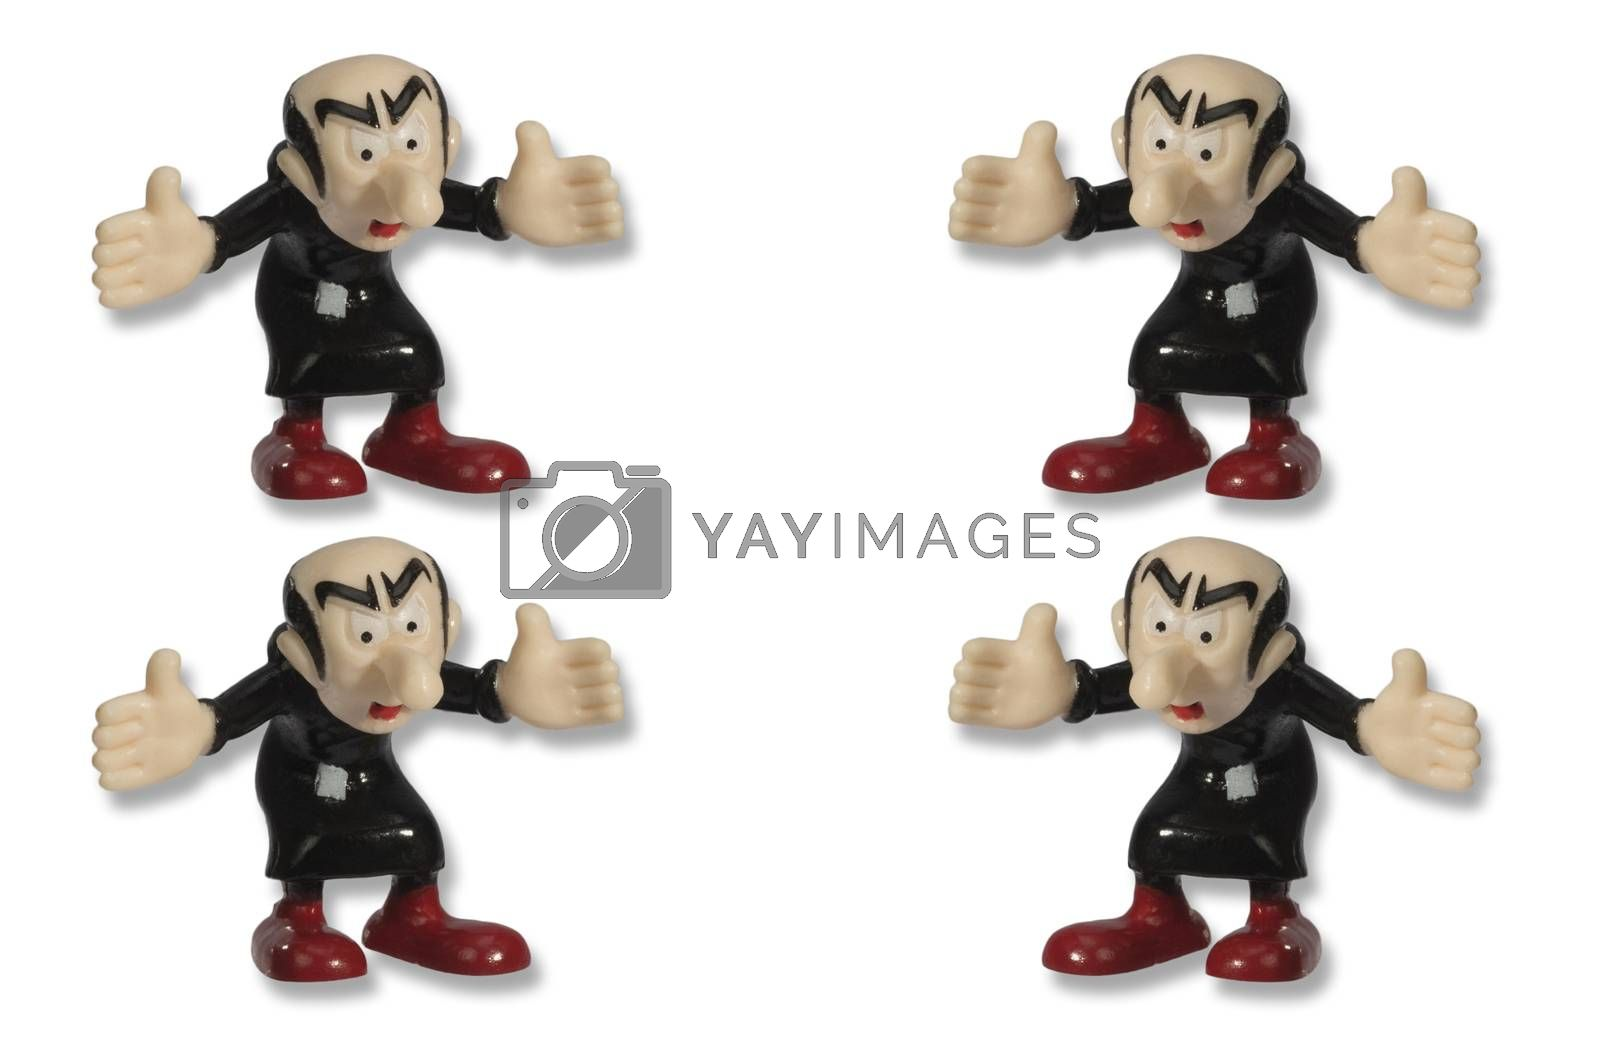 Toy man in a black suit and red shoes opened his arms to embrace